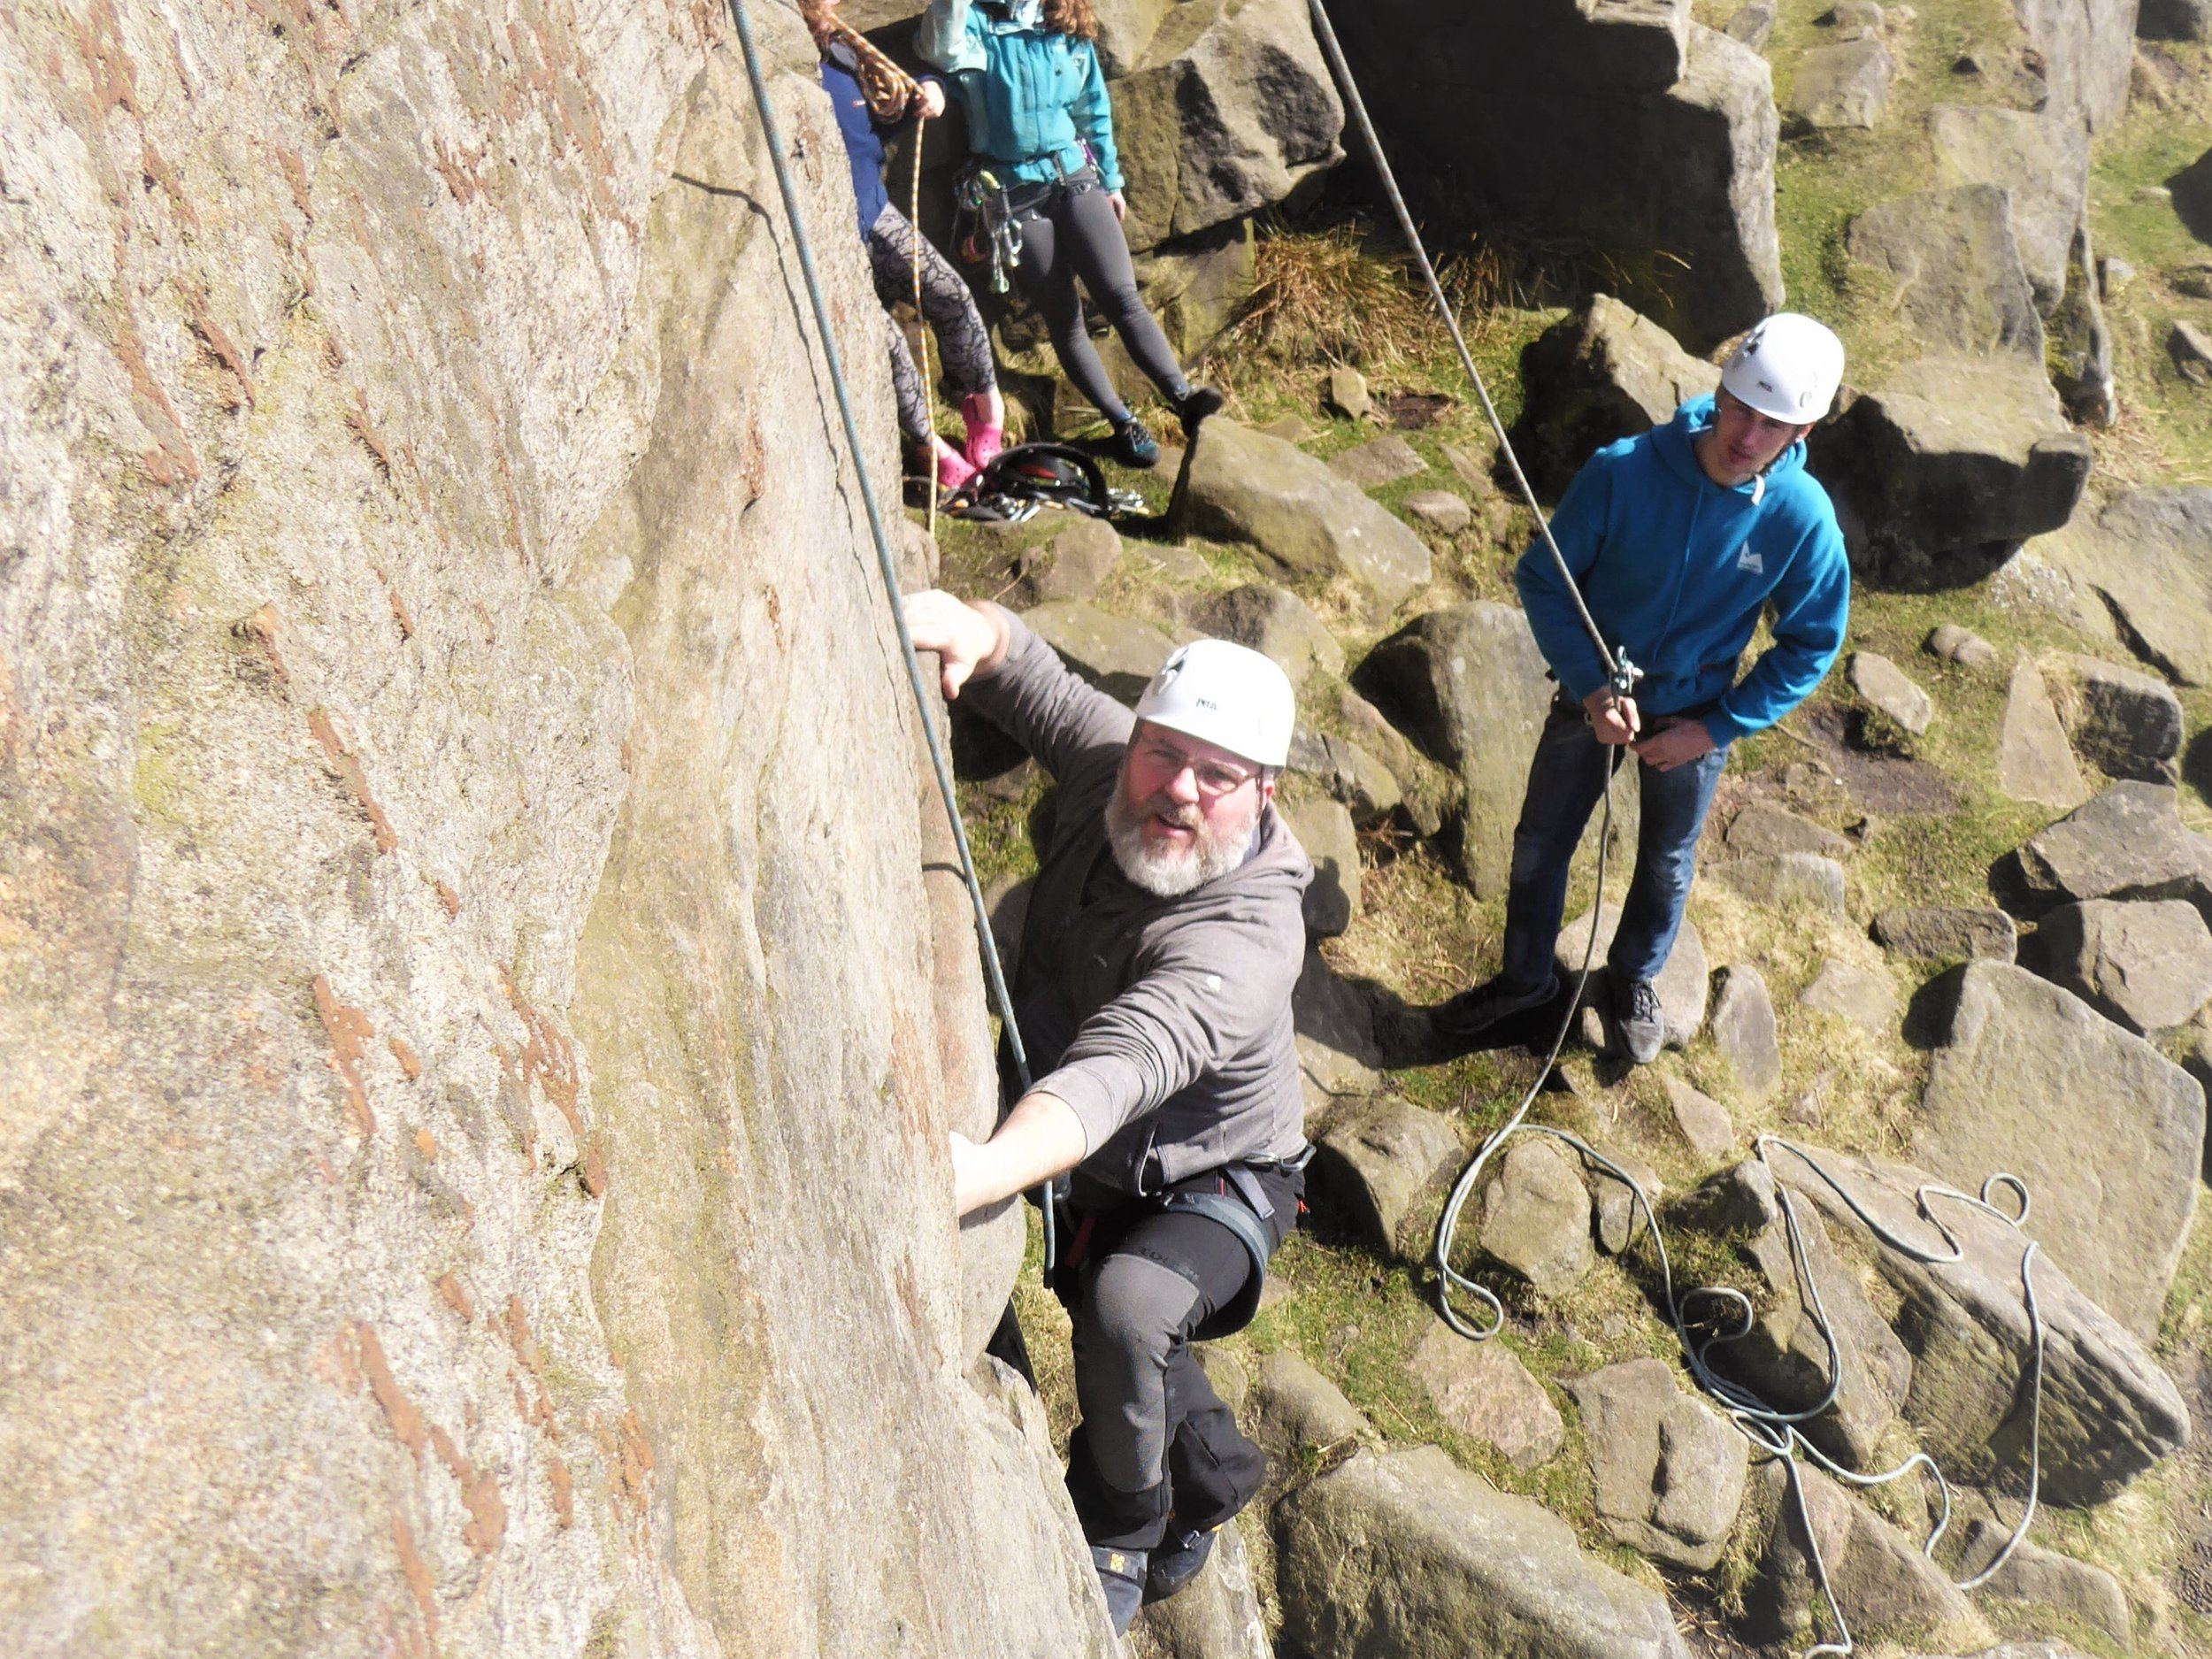 Hire an Instructor - Give your family and friends the experience of a lifetime with a day out in the Peak District with one of our instructors. We provide the equipment and expertise, you just need to coke and enjoy the day.